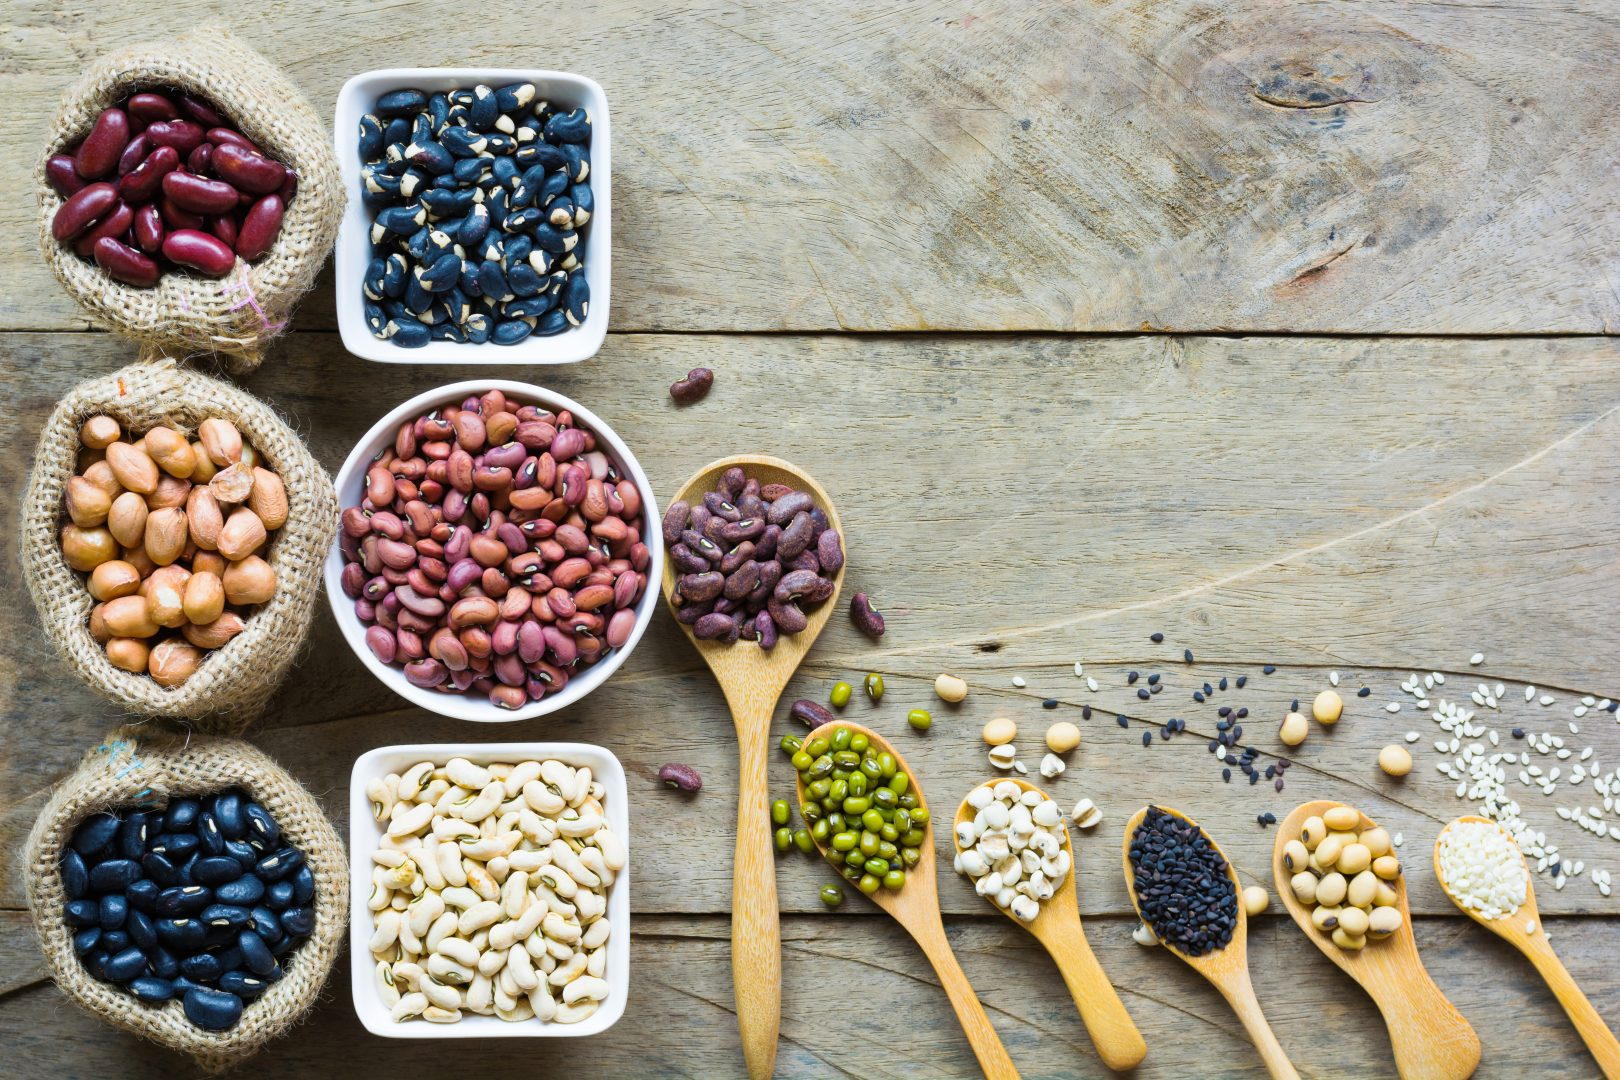 Group of colorful various beans or lentils and whole grains seed